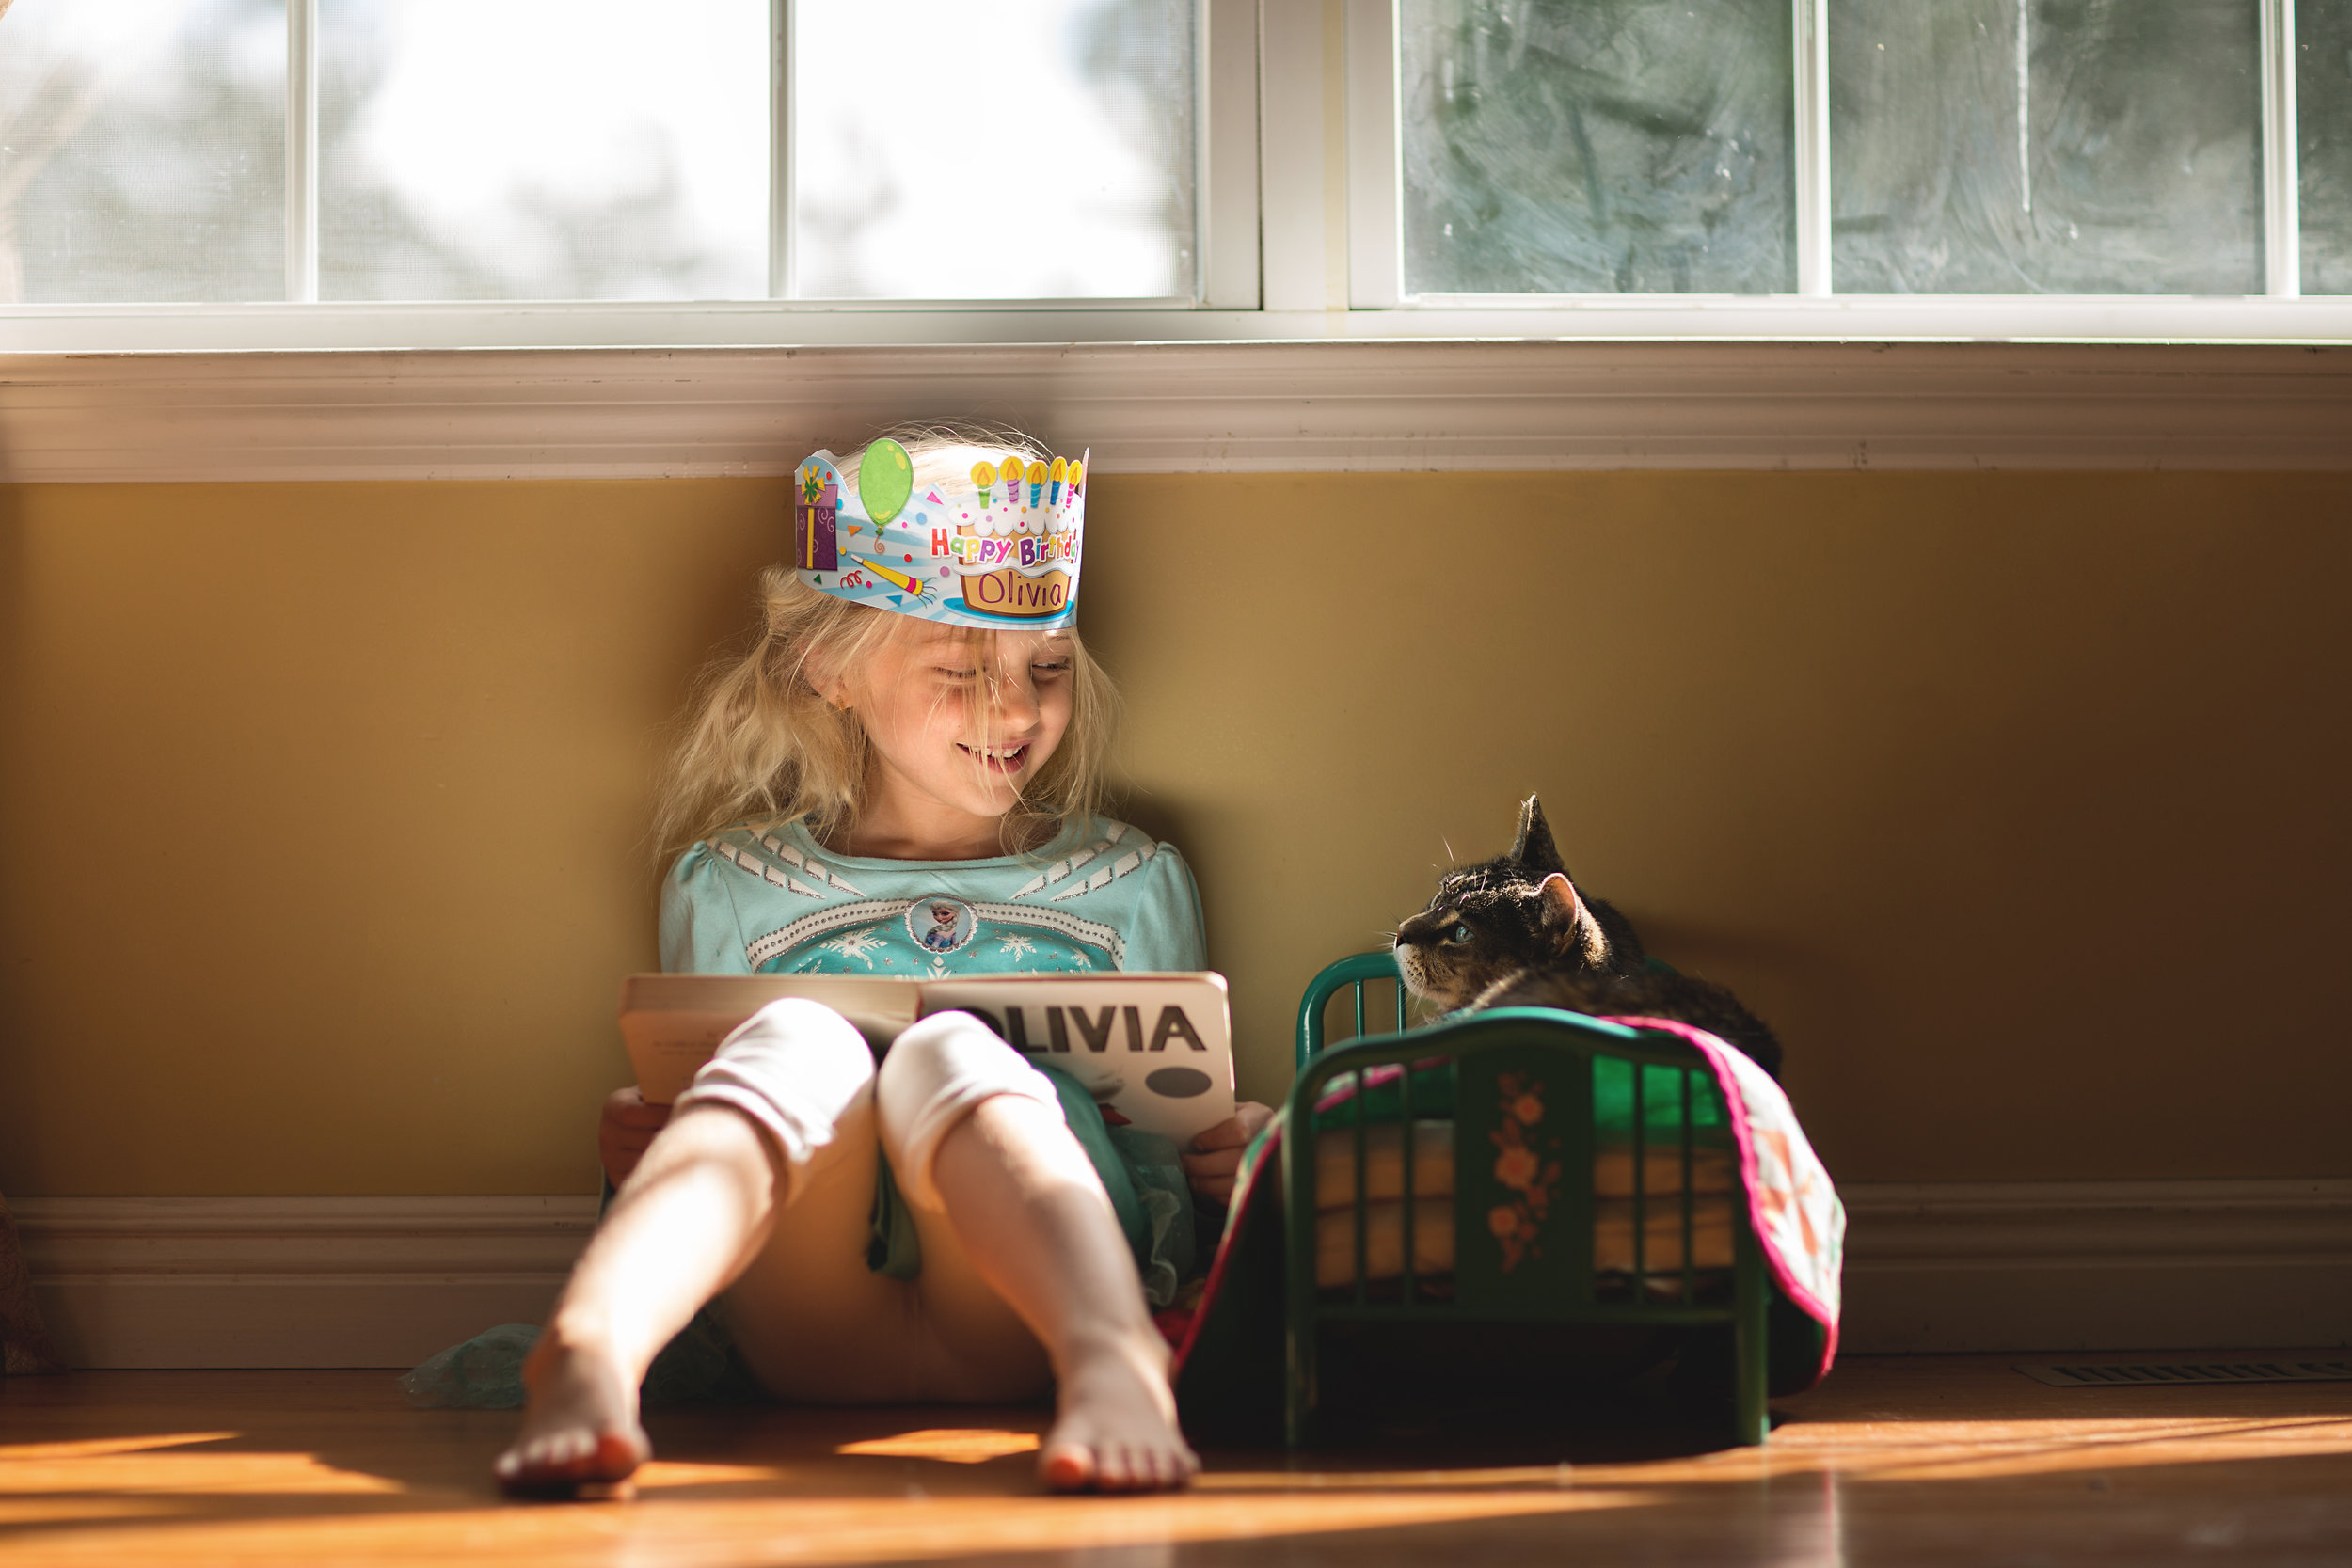 Hello-olivia-photography-Long-island-photography-children-session-family-lifestyle-reading-to-beast.jpg